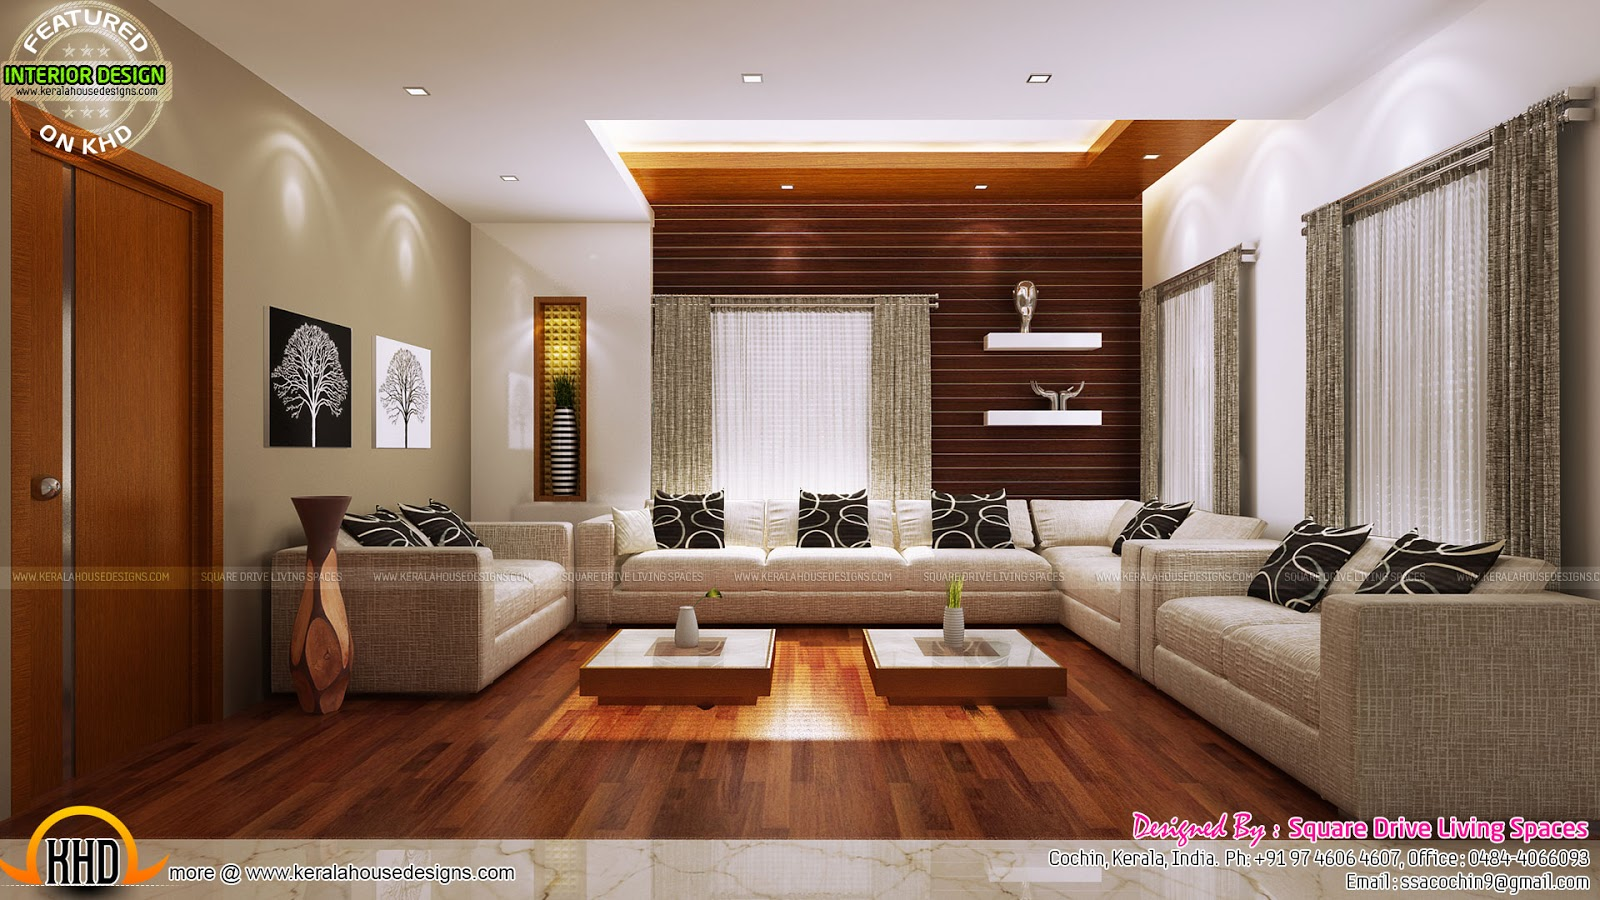 Excellent kerala interior design kerala home design and for House and home interior design